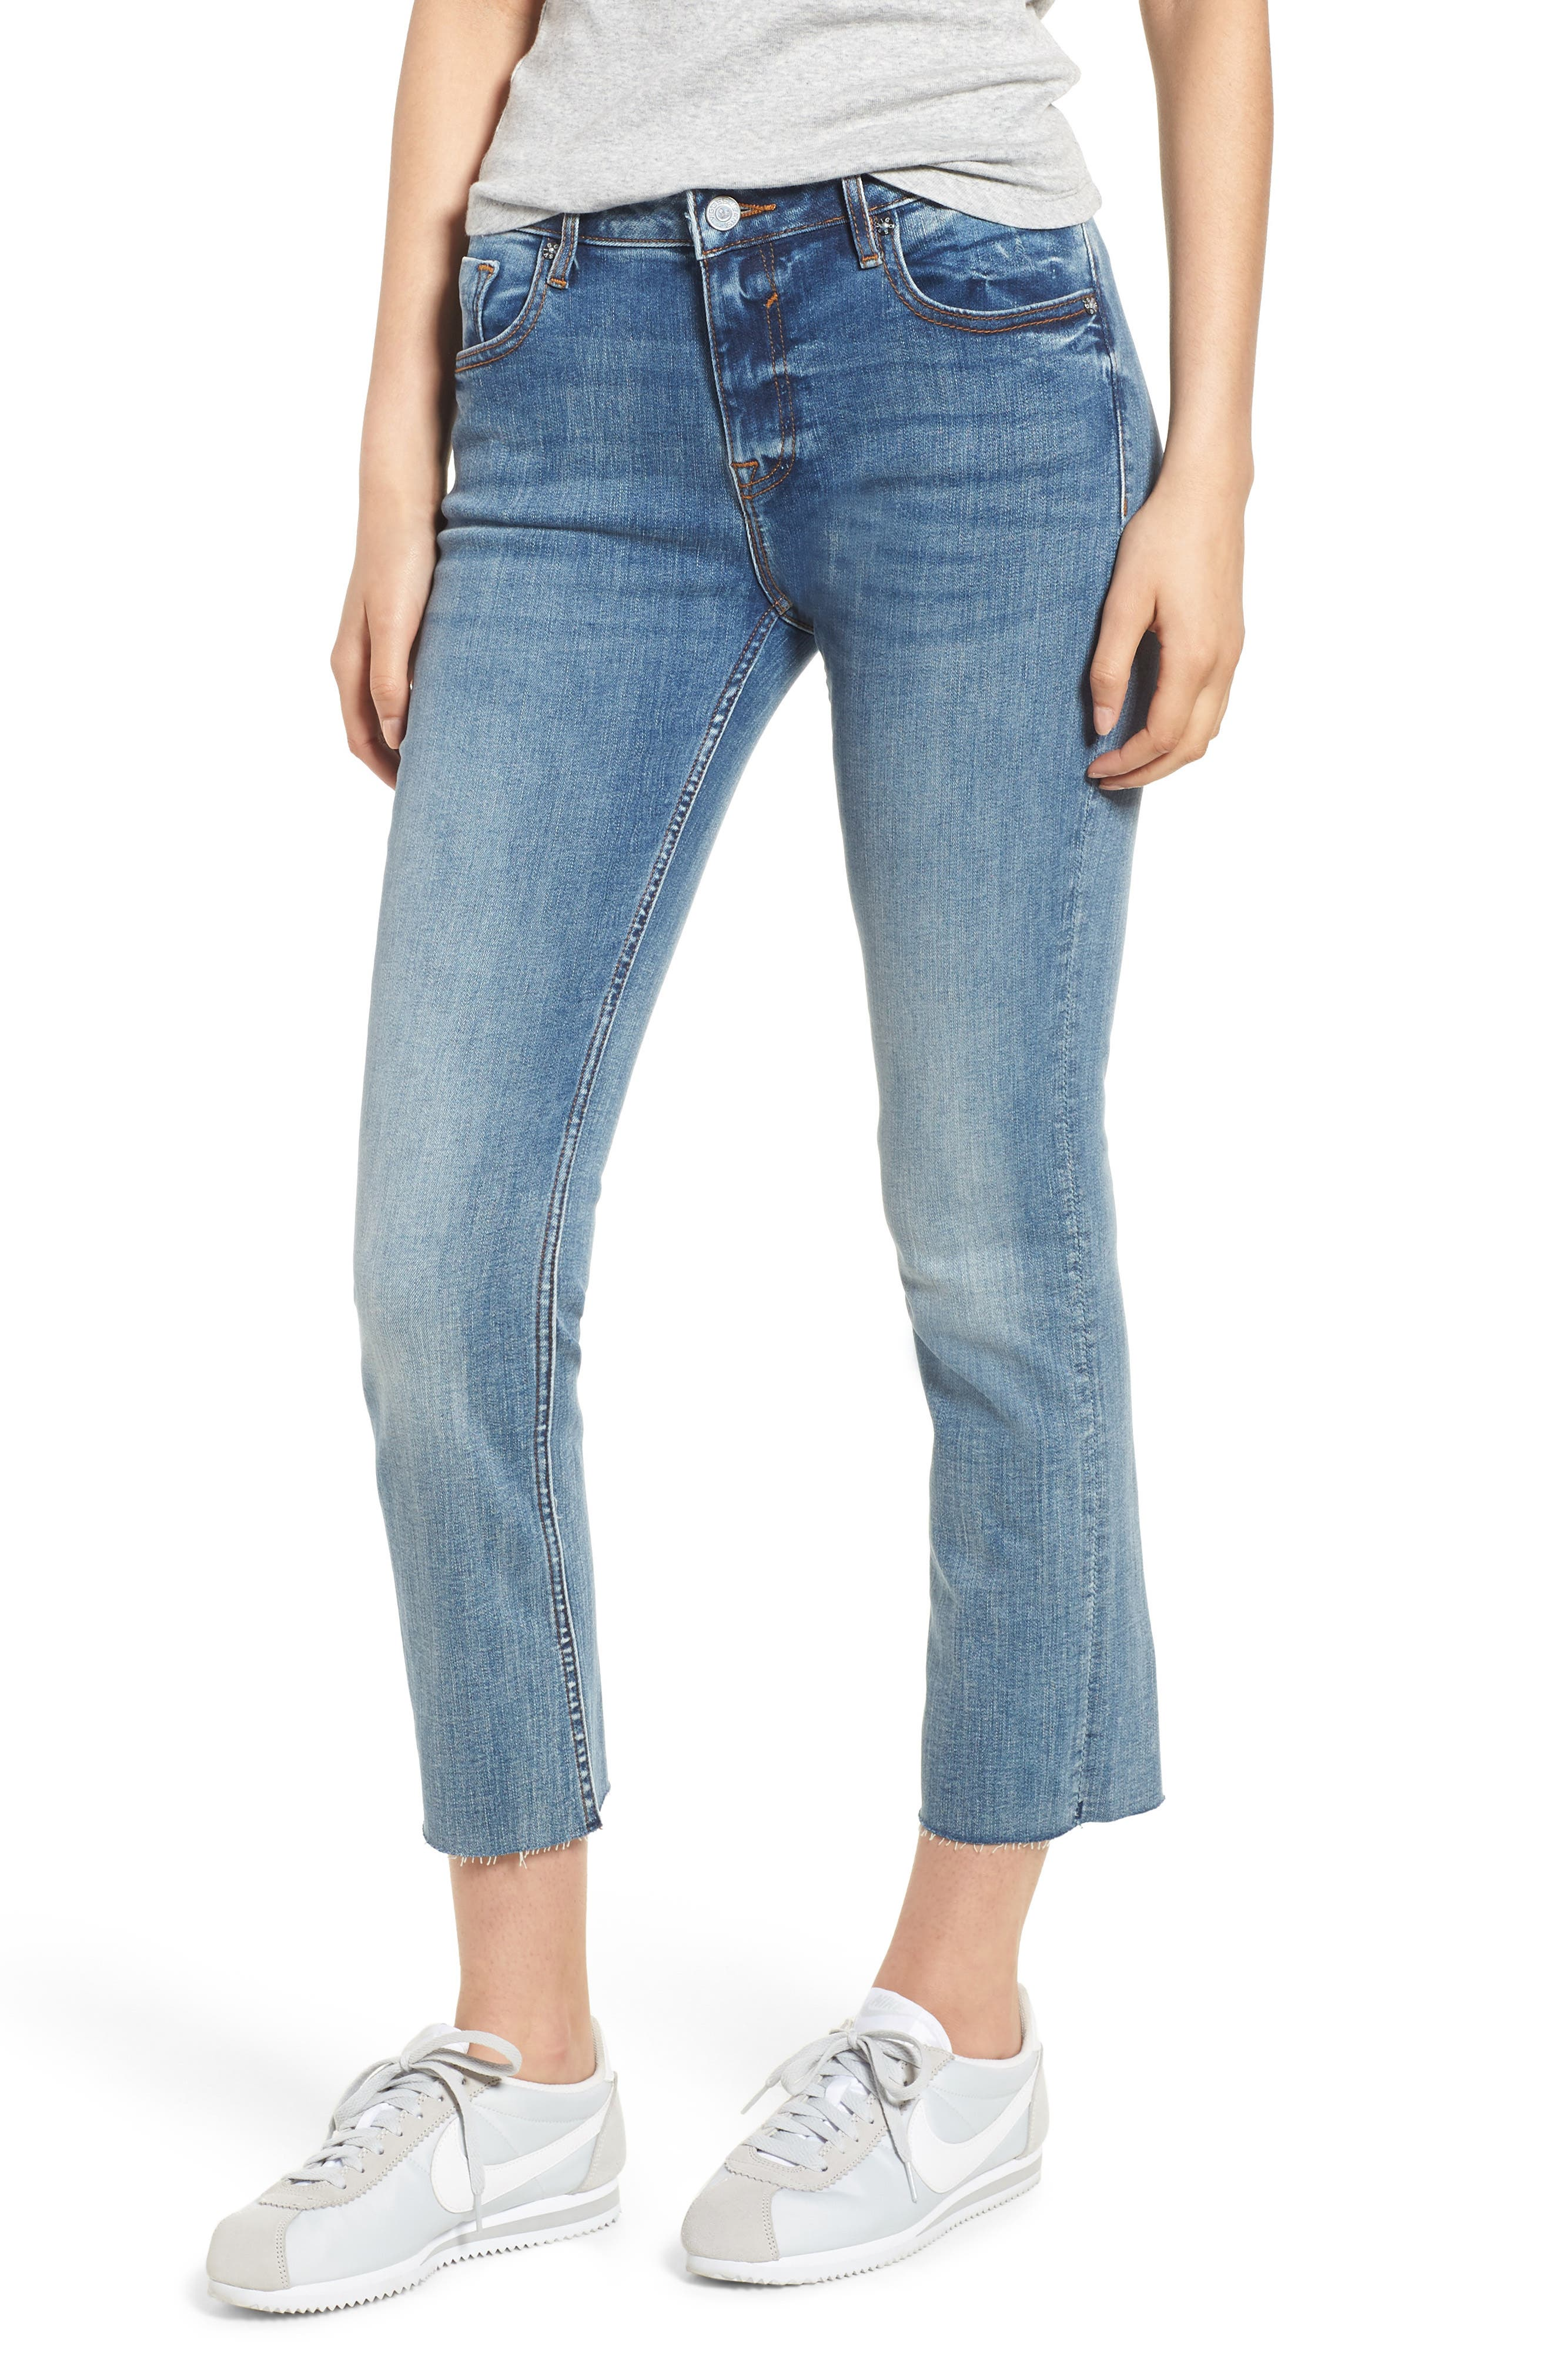 Jagger Crop Straight Leg Jeans,                         Main,                         color,